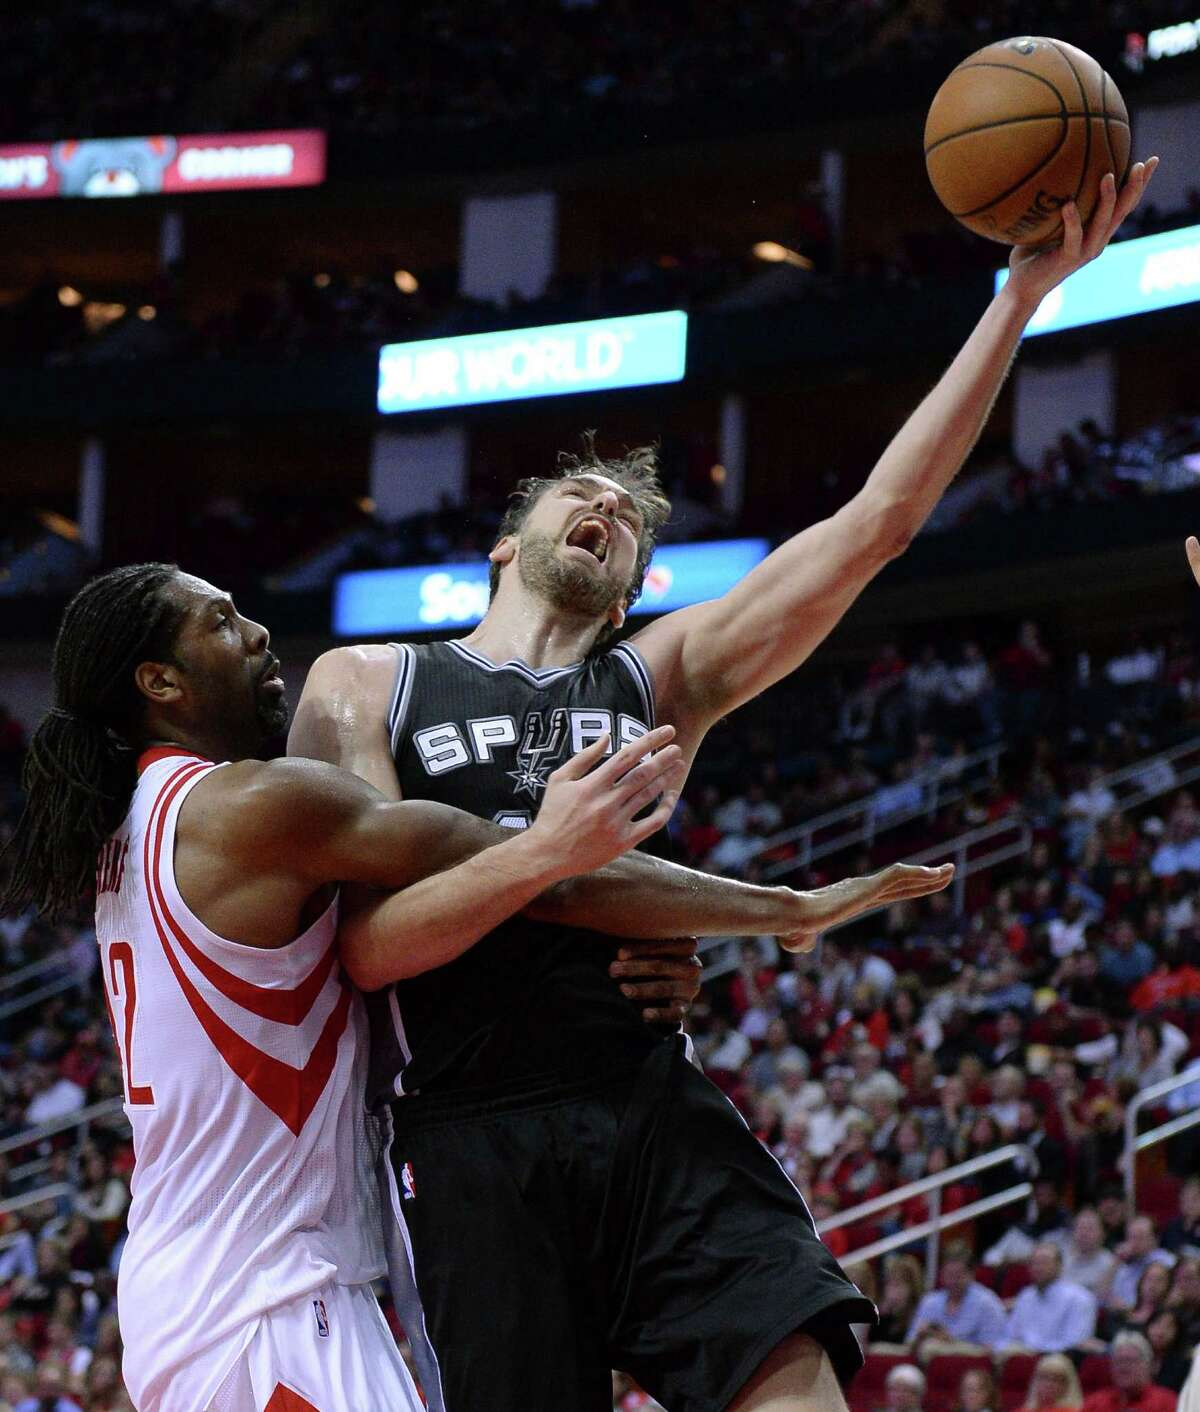 The Spurs' Pau Gasol, right, lets it be known he has been fouled by Rockets center Nene in the second half Saturday night. Gasol finished with 15 points.